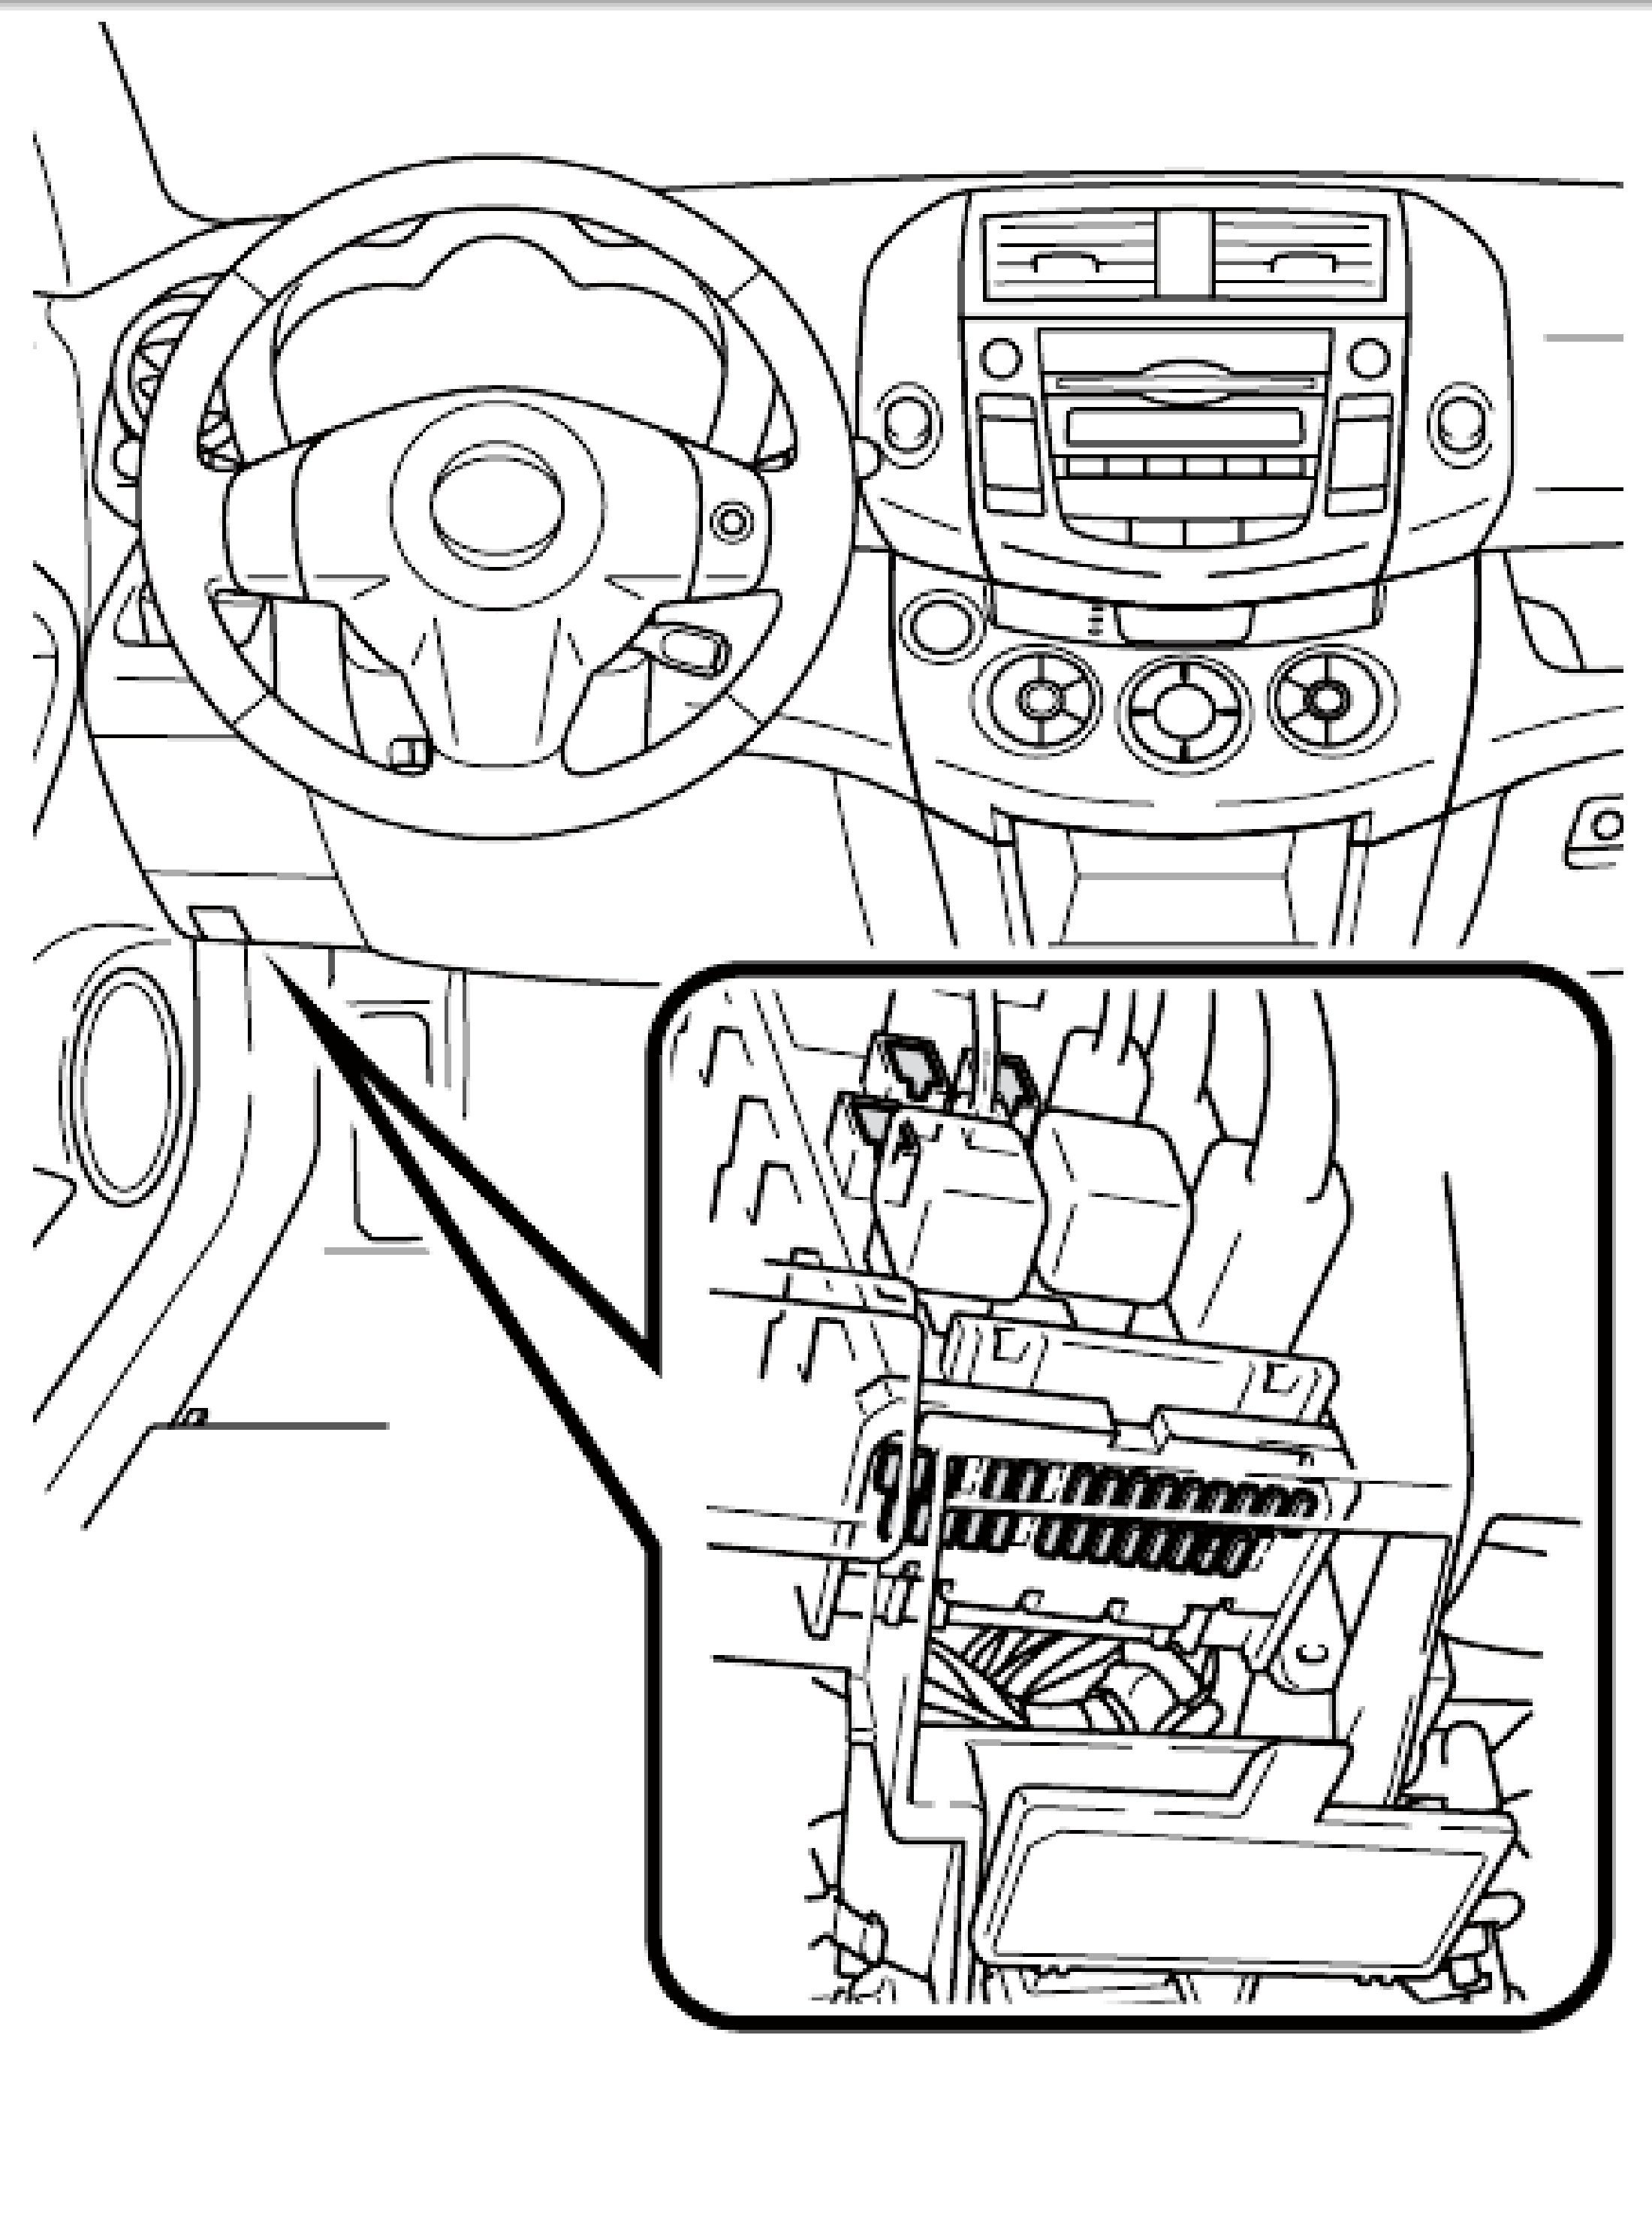 1999 Rav4 Fuse Box Data Wiring Diagram Today Transit Connect Fuse Diagram  2000 Rav4 Fuse Diagram